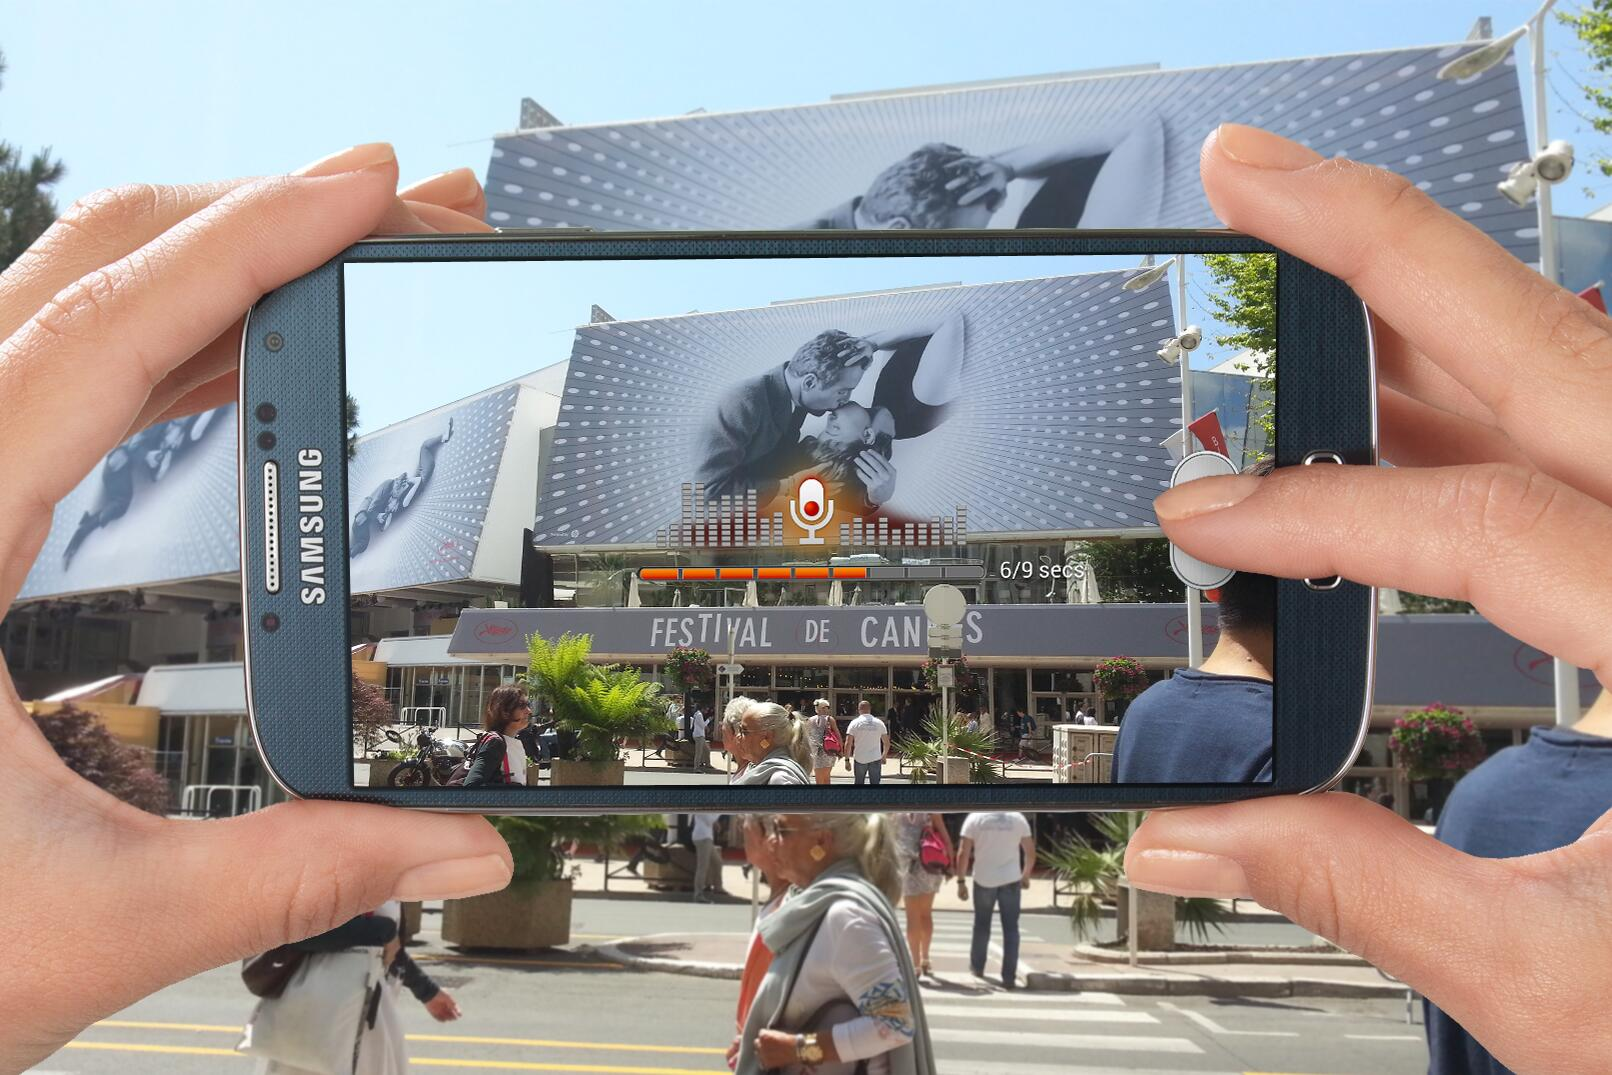 """""""Hi Samsung Mobile fans, we're at #Cannes2013 for the @gatsbymovie premiere."""" #GALAXYS4 using Sound & Shot. http://t.co/Z6RHk5jvXl"""